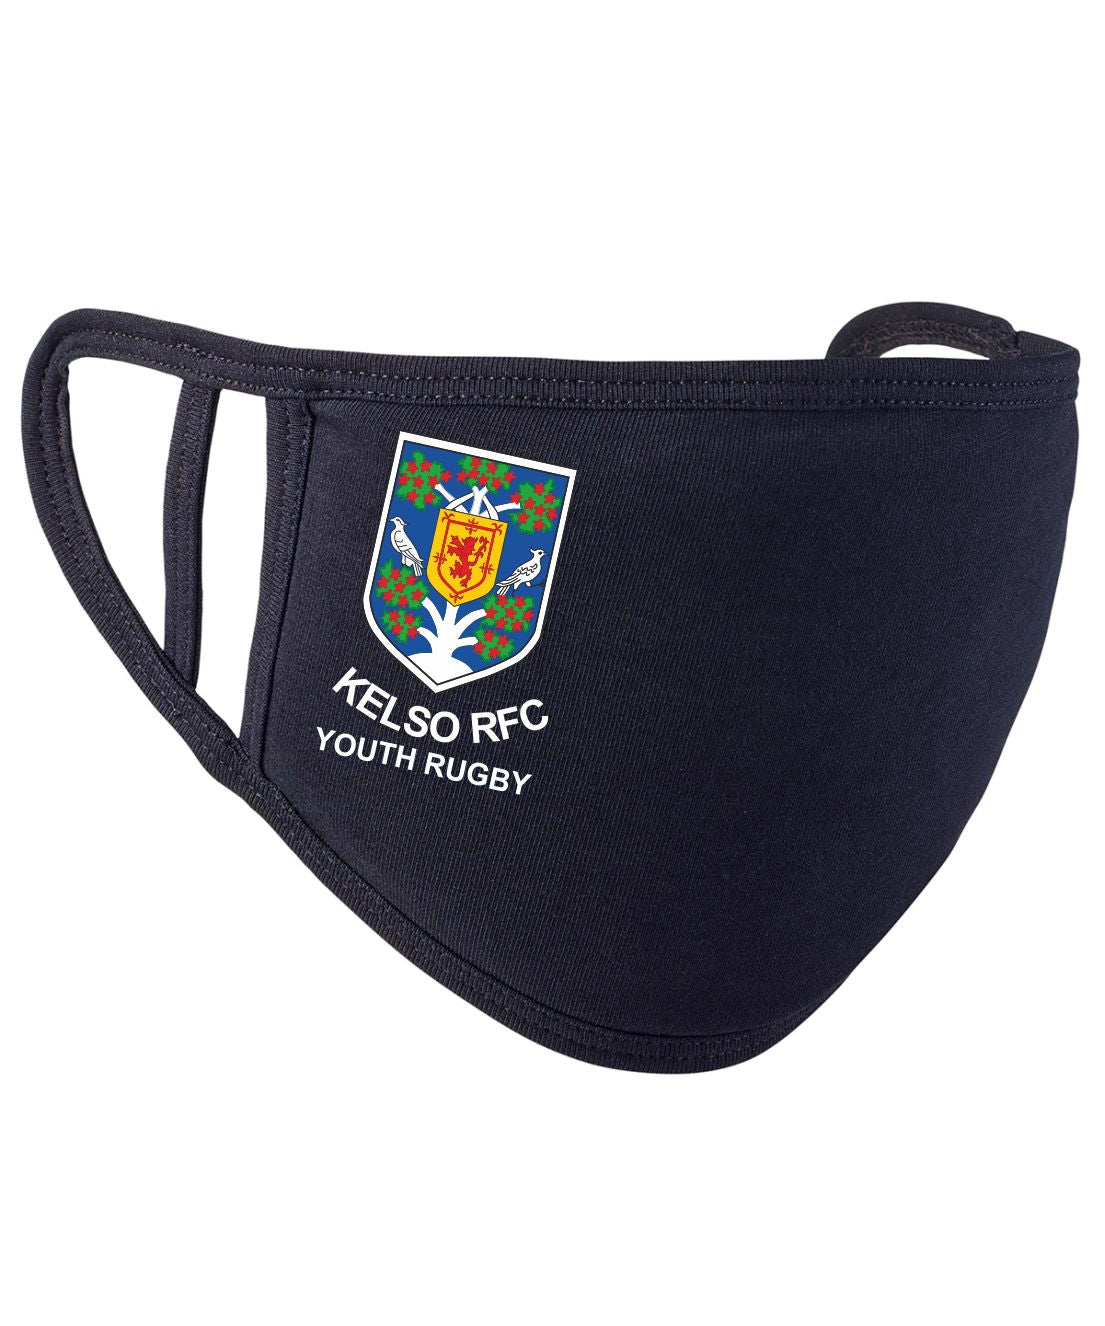 Kelso RFC Youth Rugby Face Cover